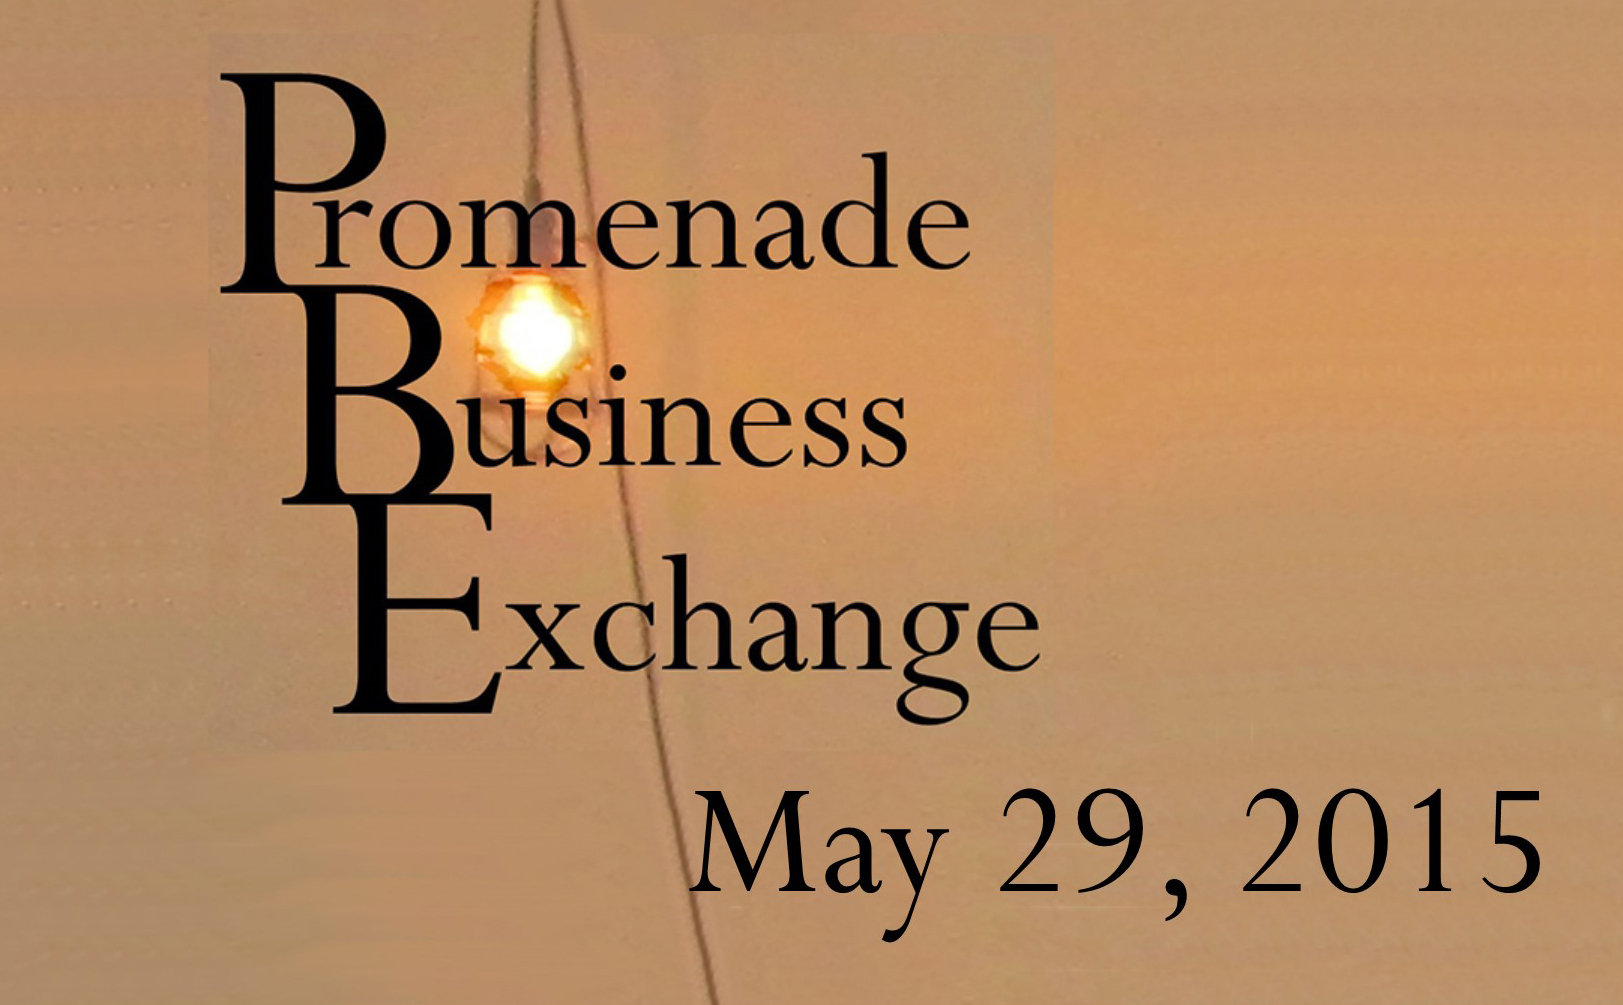 Promenade Business Exchange May 29, 2015